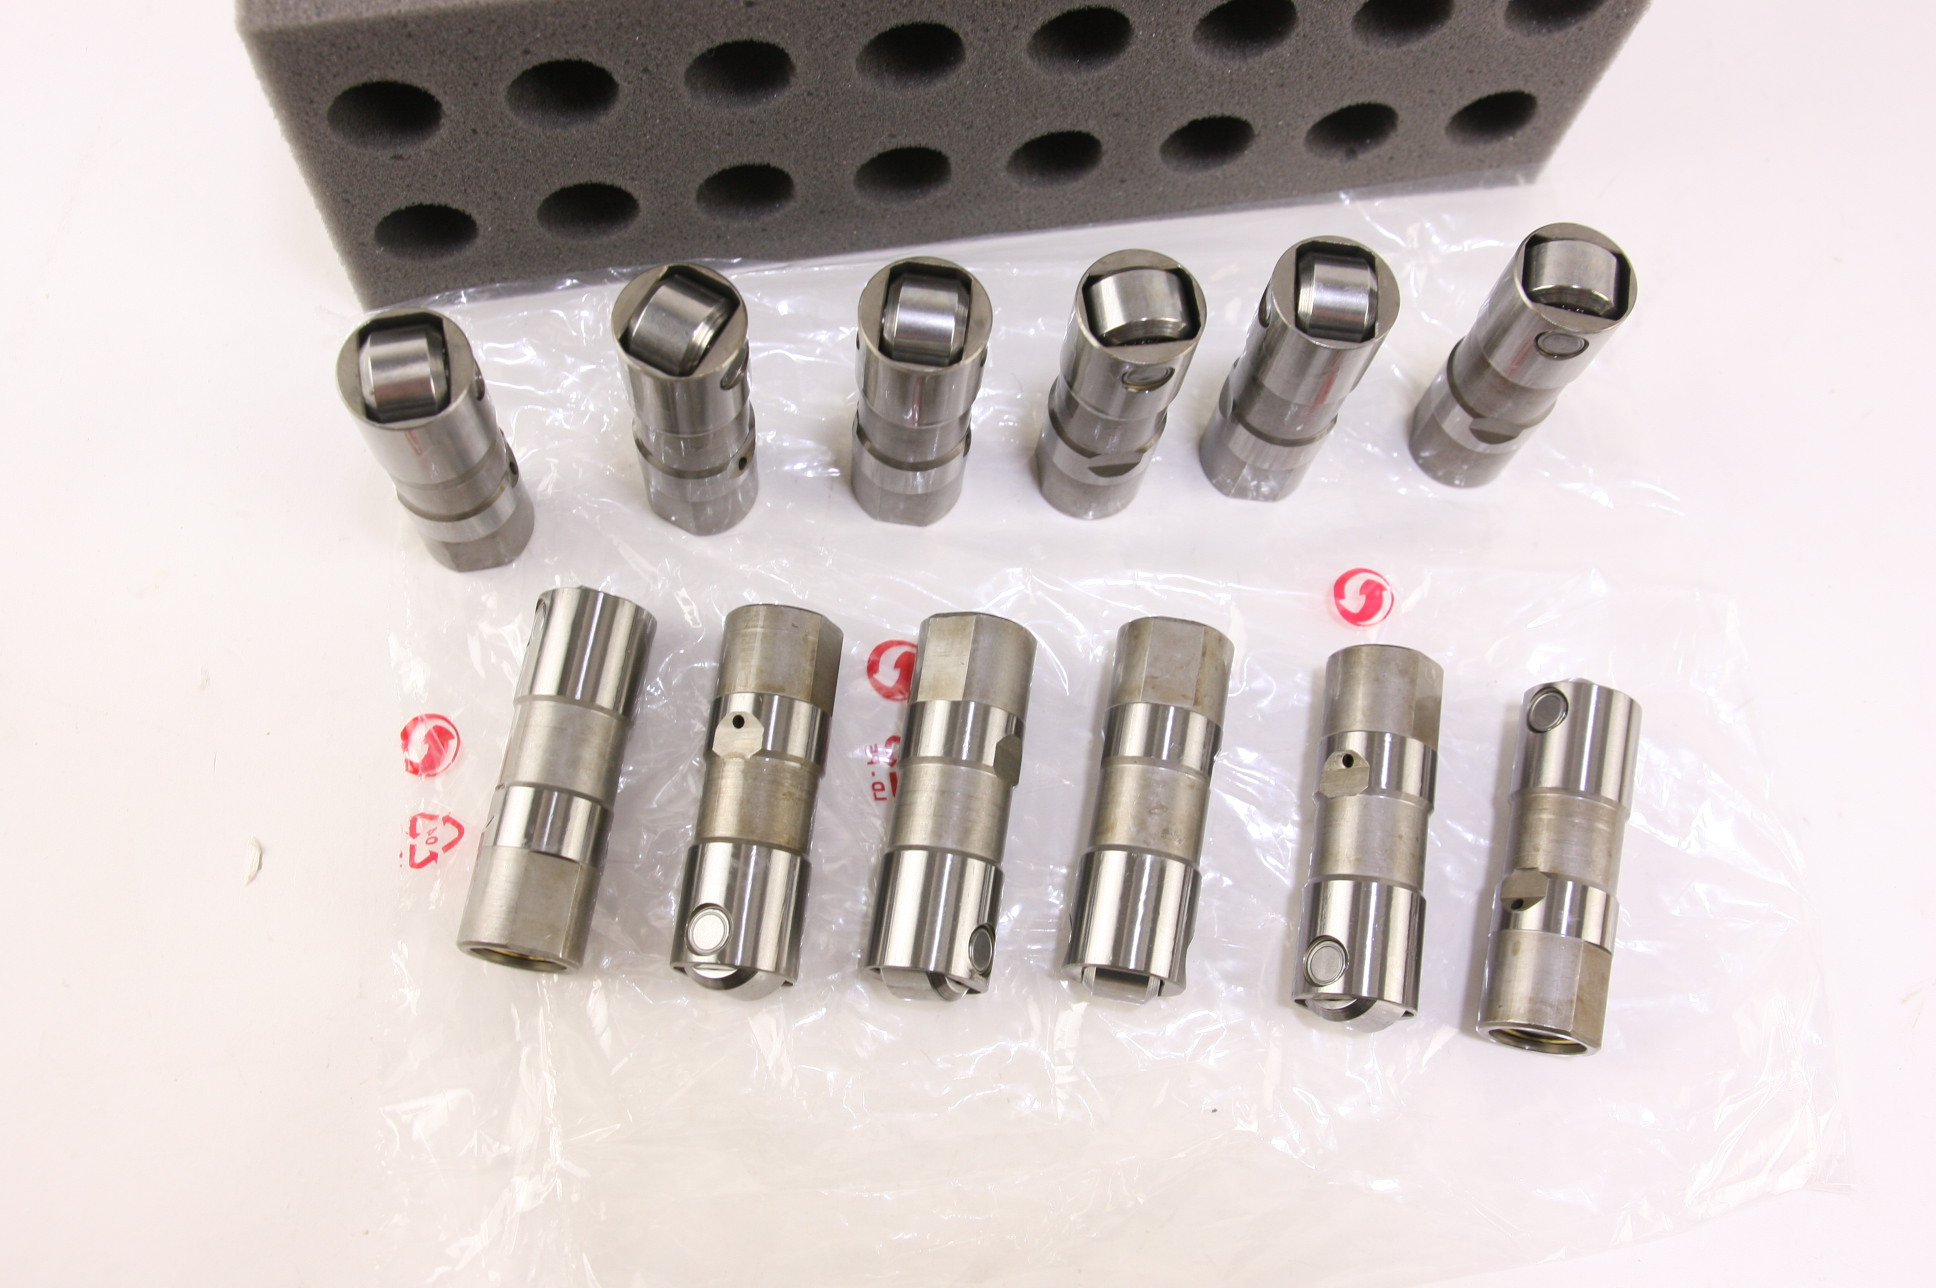 GM OEM HL124 Buick Chevy GMC V6 3800 3.8 4.3 Set of 12 Hydraulic Roller Lifters - image 2